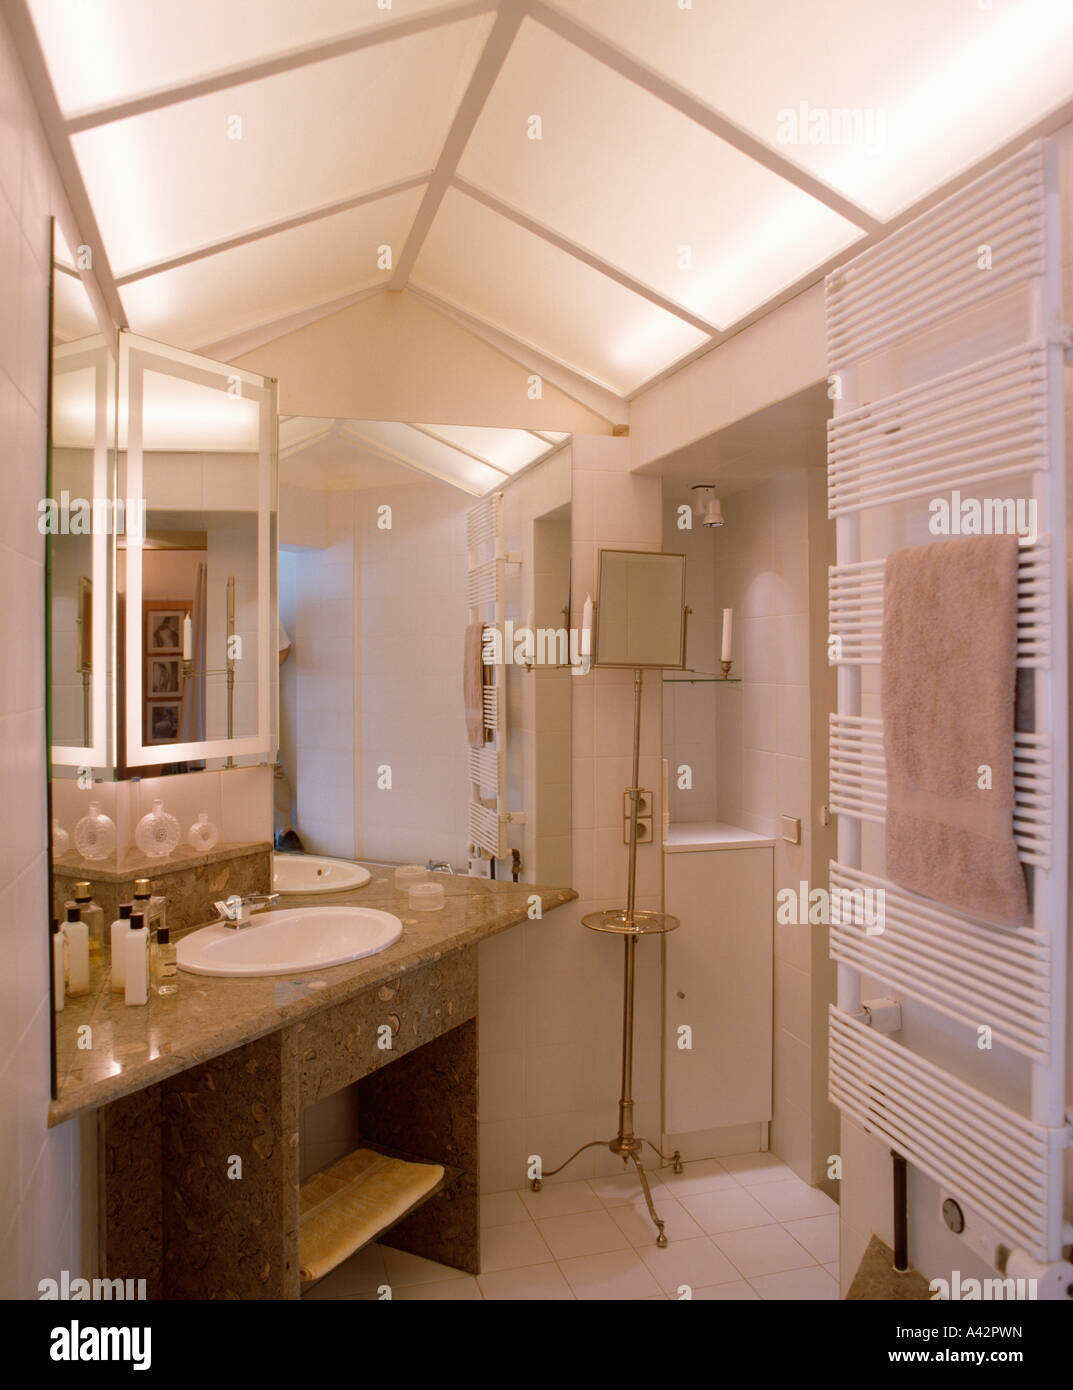 Glass panelled ceiling in white bathroom with radiator and basin in vanity unit - Stock Image